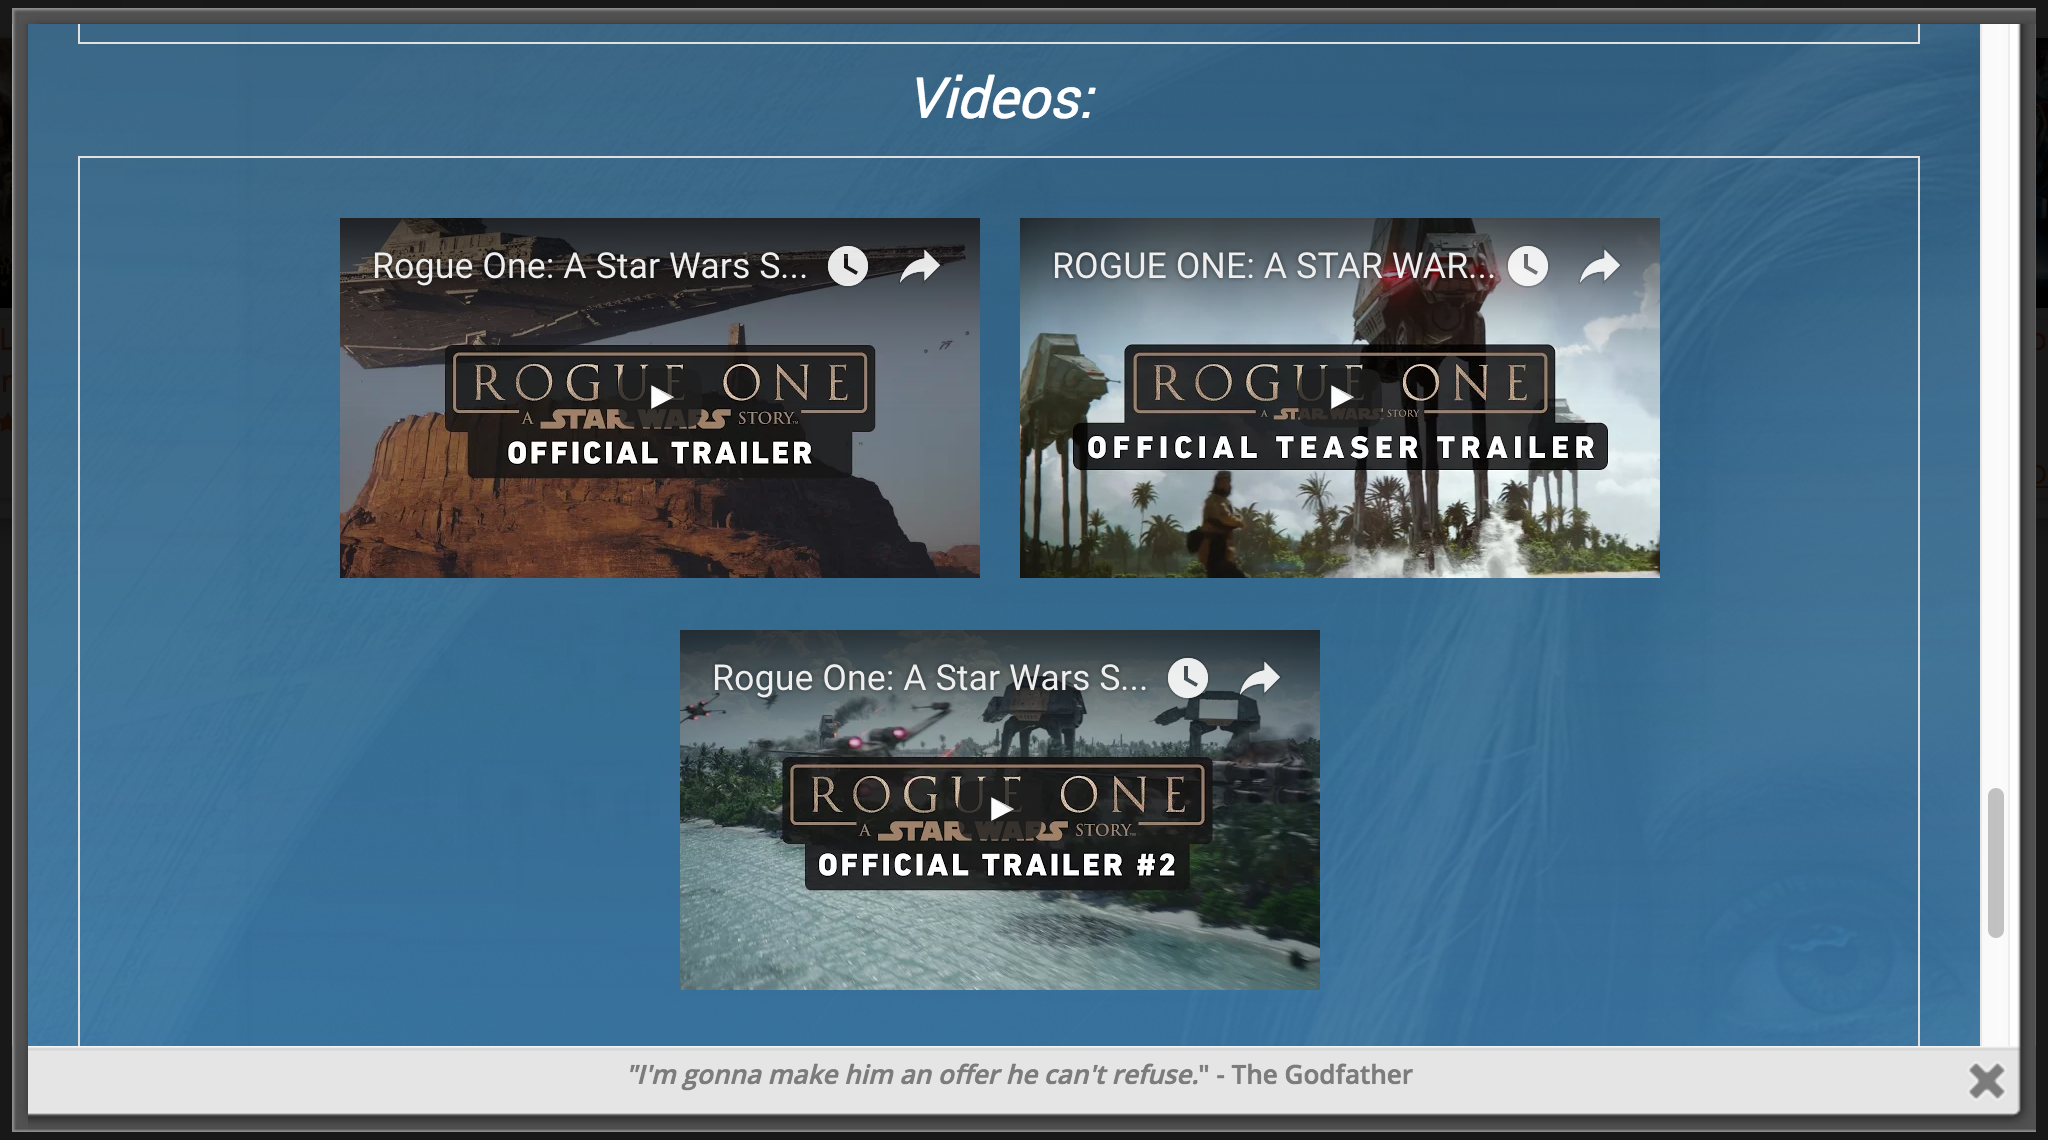 A screenshot of the Videos section, where Trailers and other videos for each Movie and TV Show are displayed.